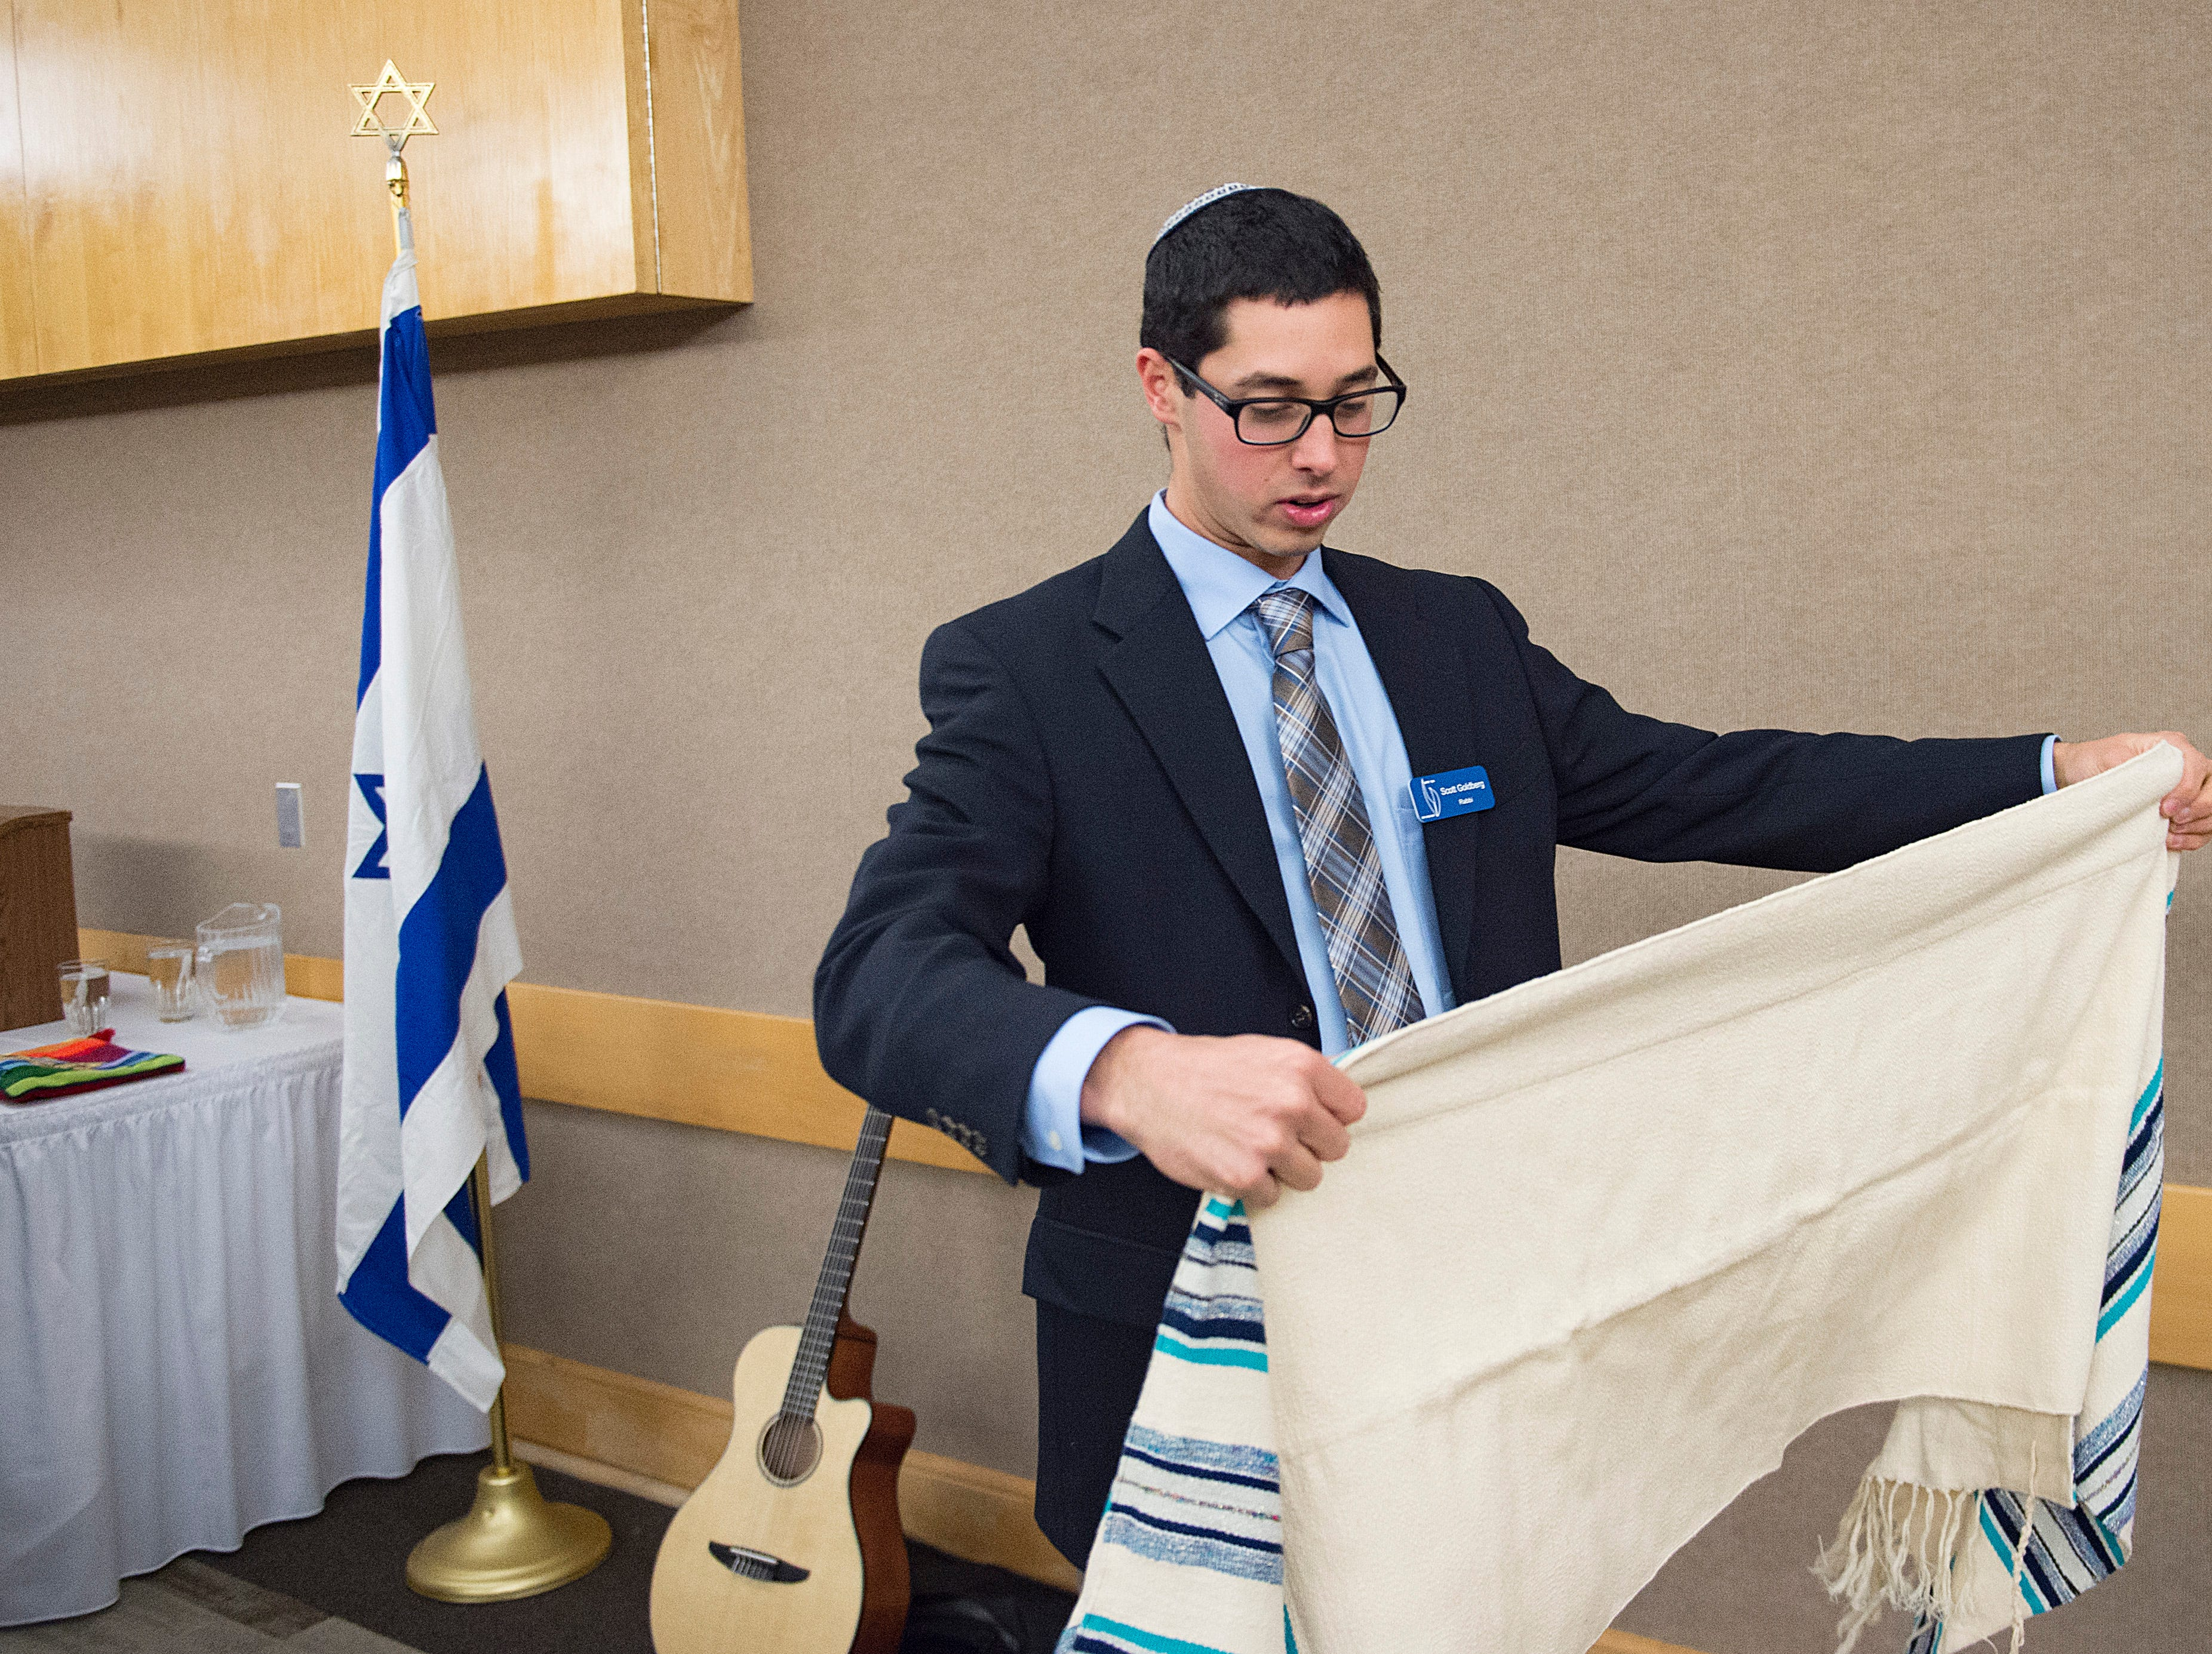 Student rabbi Scott Goldberg prepares his tallit before shabbat services  on the sixth night of Hanukkah during a family gathering with Temple Or Hadash at the Fort Collins Senior Center on Friday, December 7, 2018.